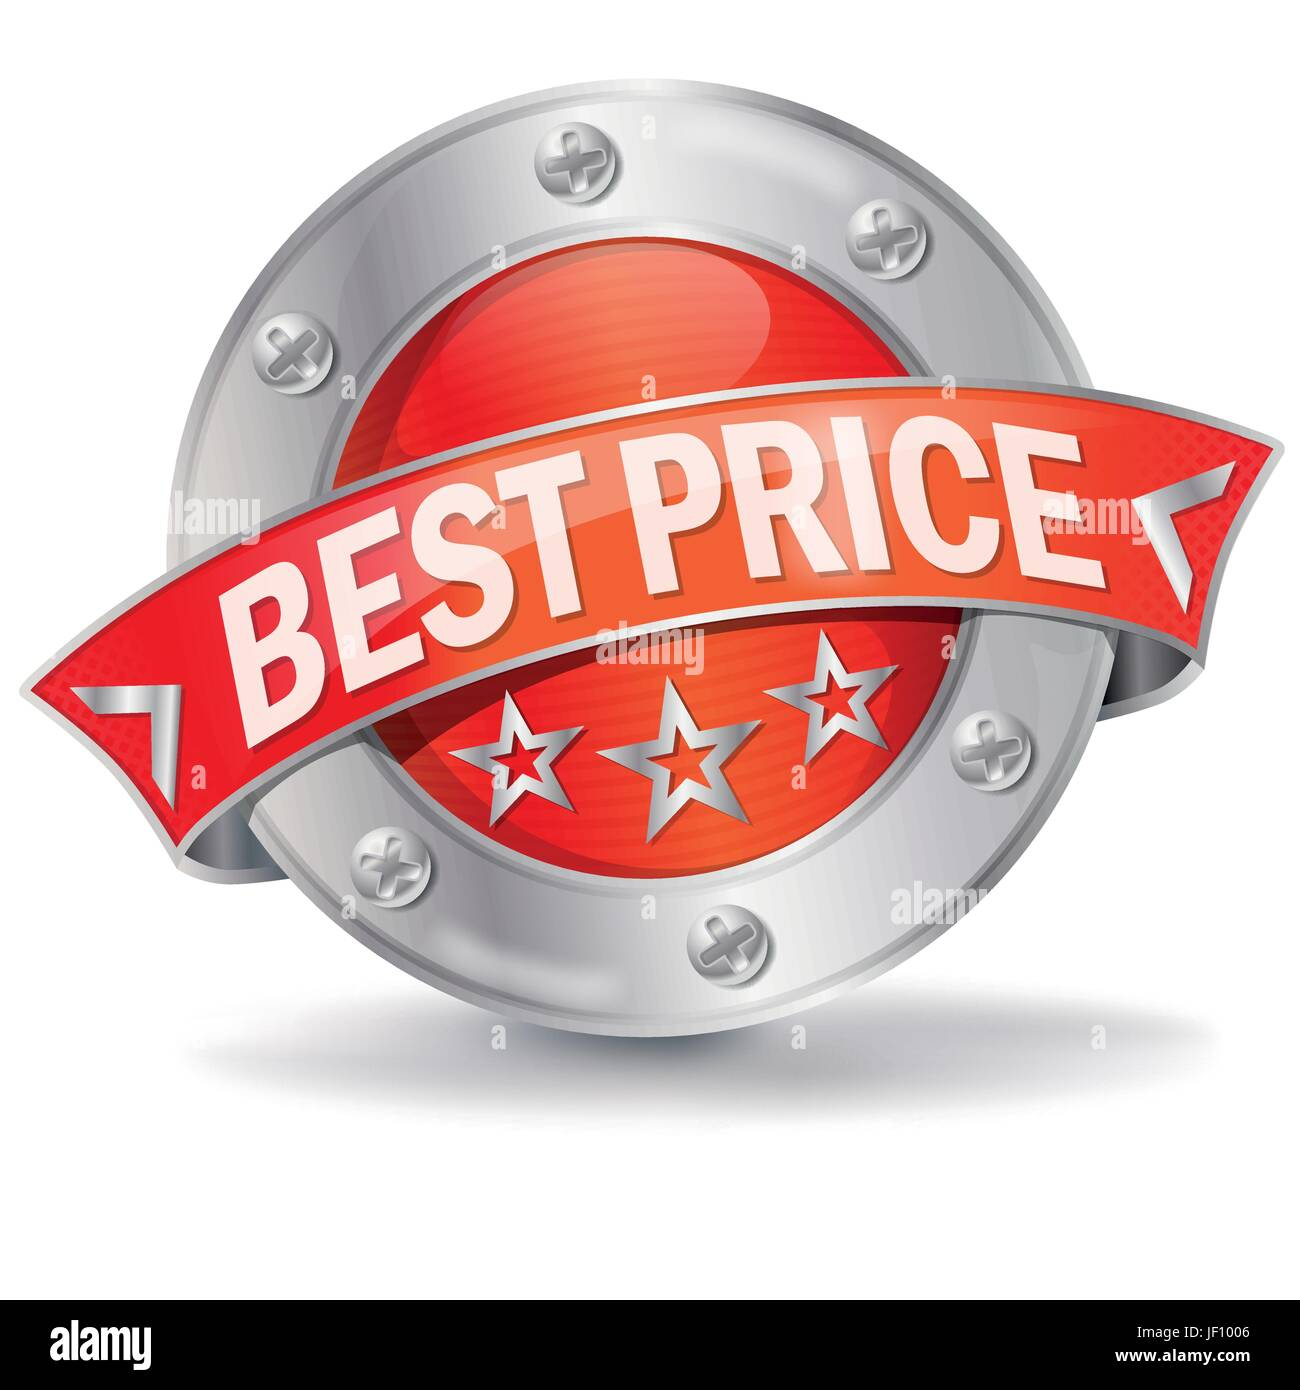 prices, purchase, one-time, offer, price, bargain buy, inexpensive, cheap, - Stock Vector